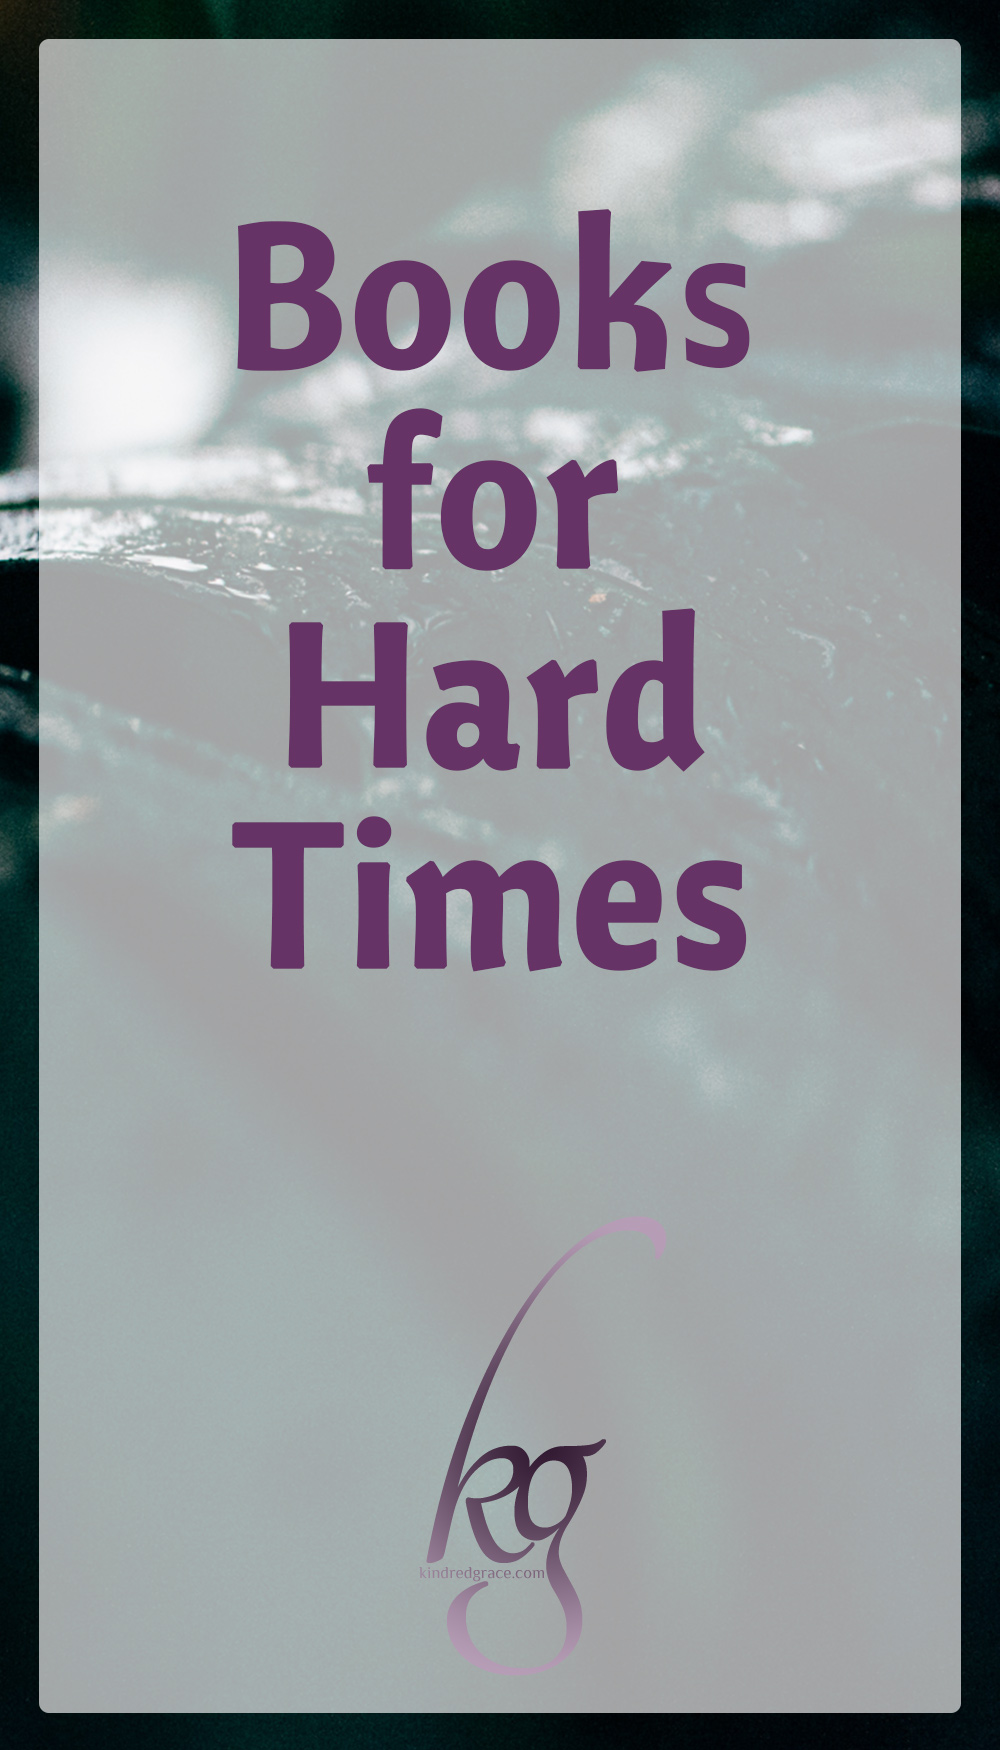 Books for Hard Times via @KindredGrace